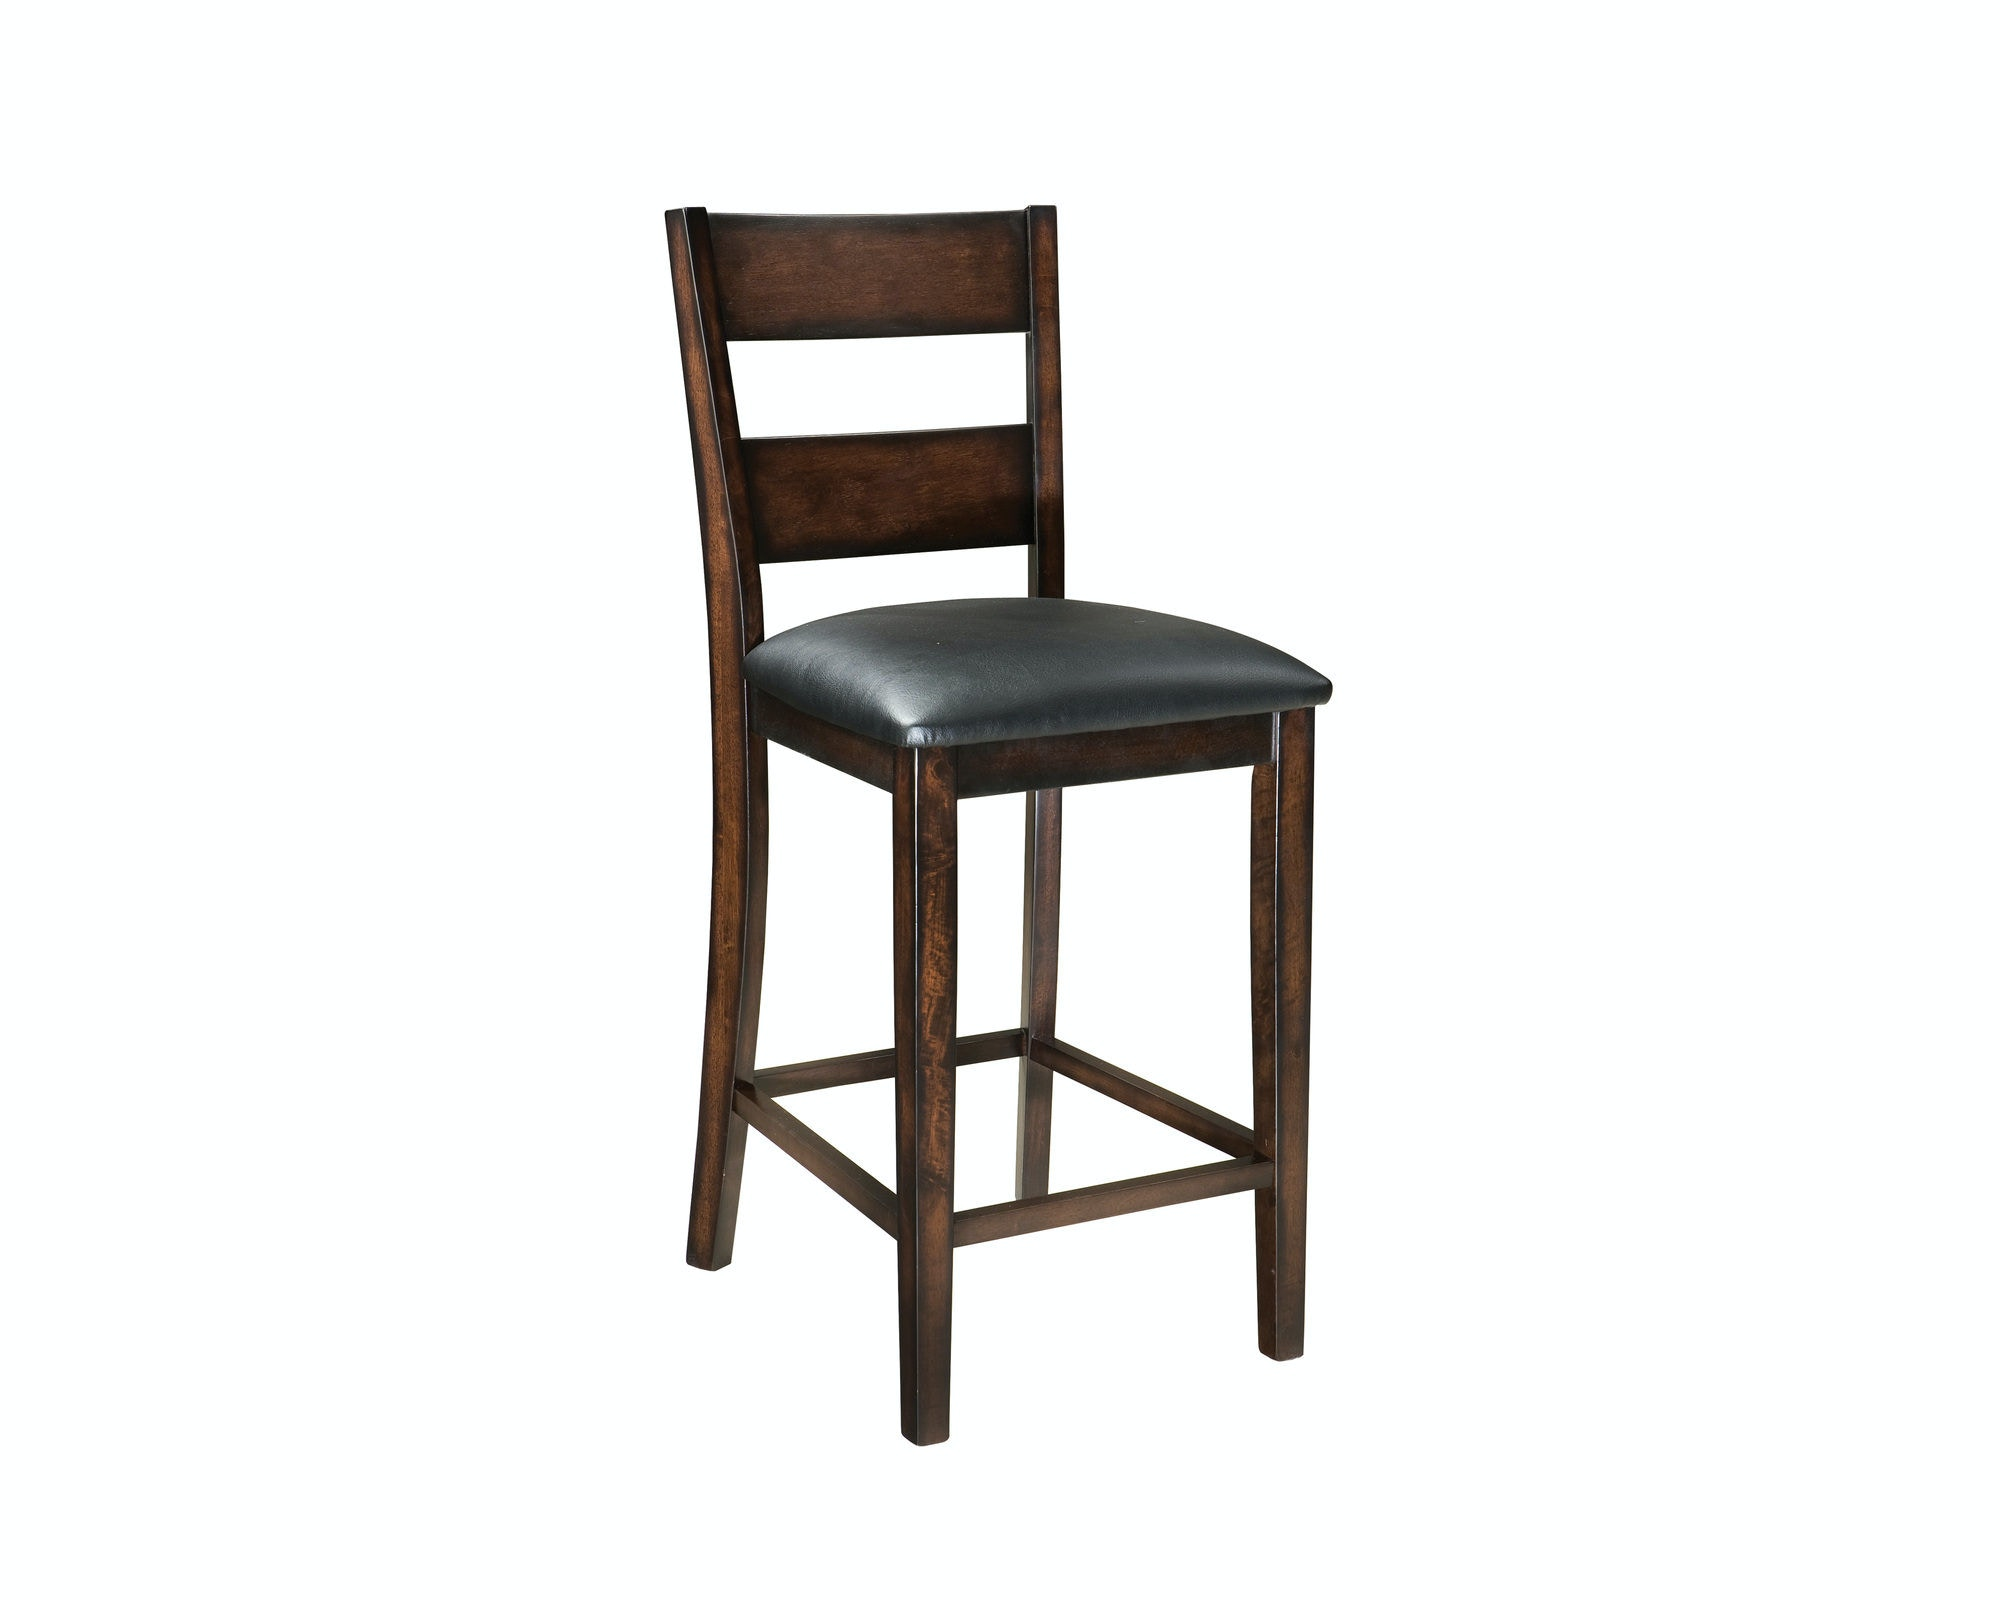 Standard Furniture Bar And Game Room 24 Inches Seat Height Stool